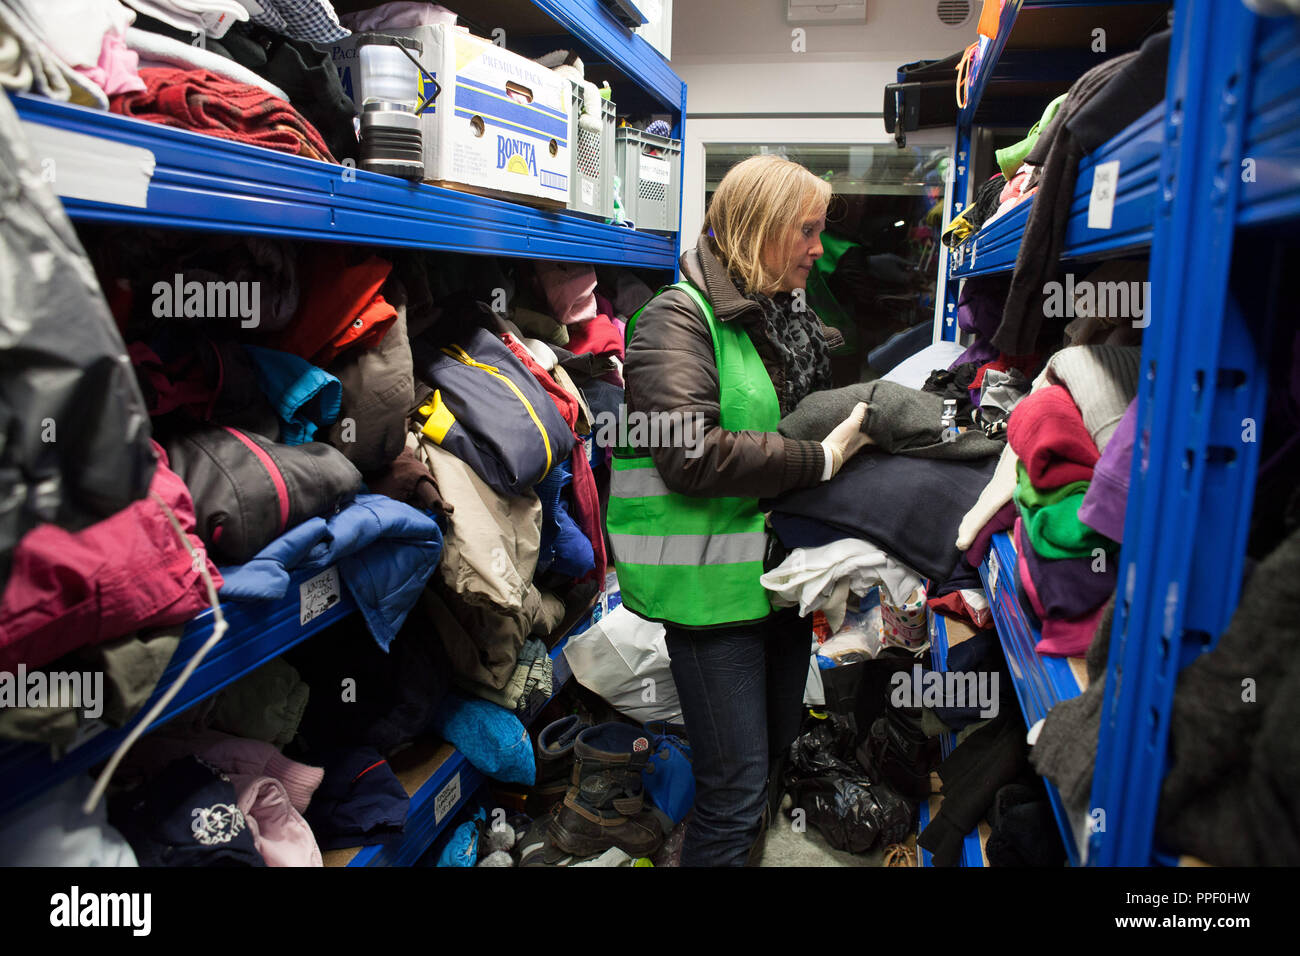 The voluntary ZOB-Angels take care of refugees stranded or waiting for their journey at the Central Bus Station (ZOB) in Munich They talk to refugees, distribute food, tea, and warm clothes. In the picture, a helper in a container with warm clothes, blankets and sleeping bags. - Stock Image